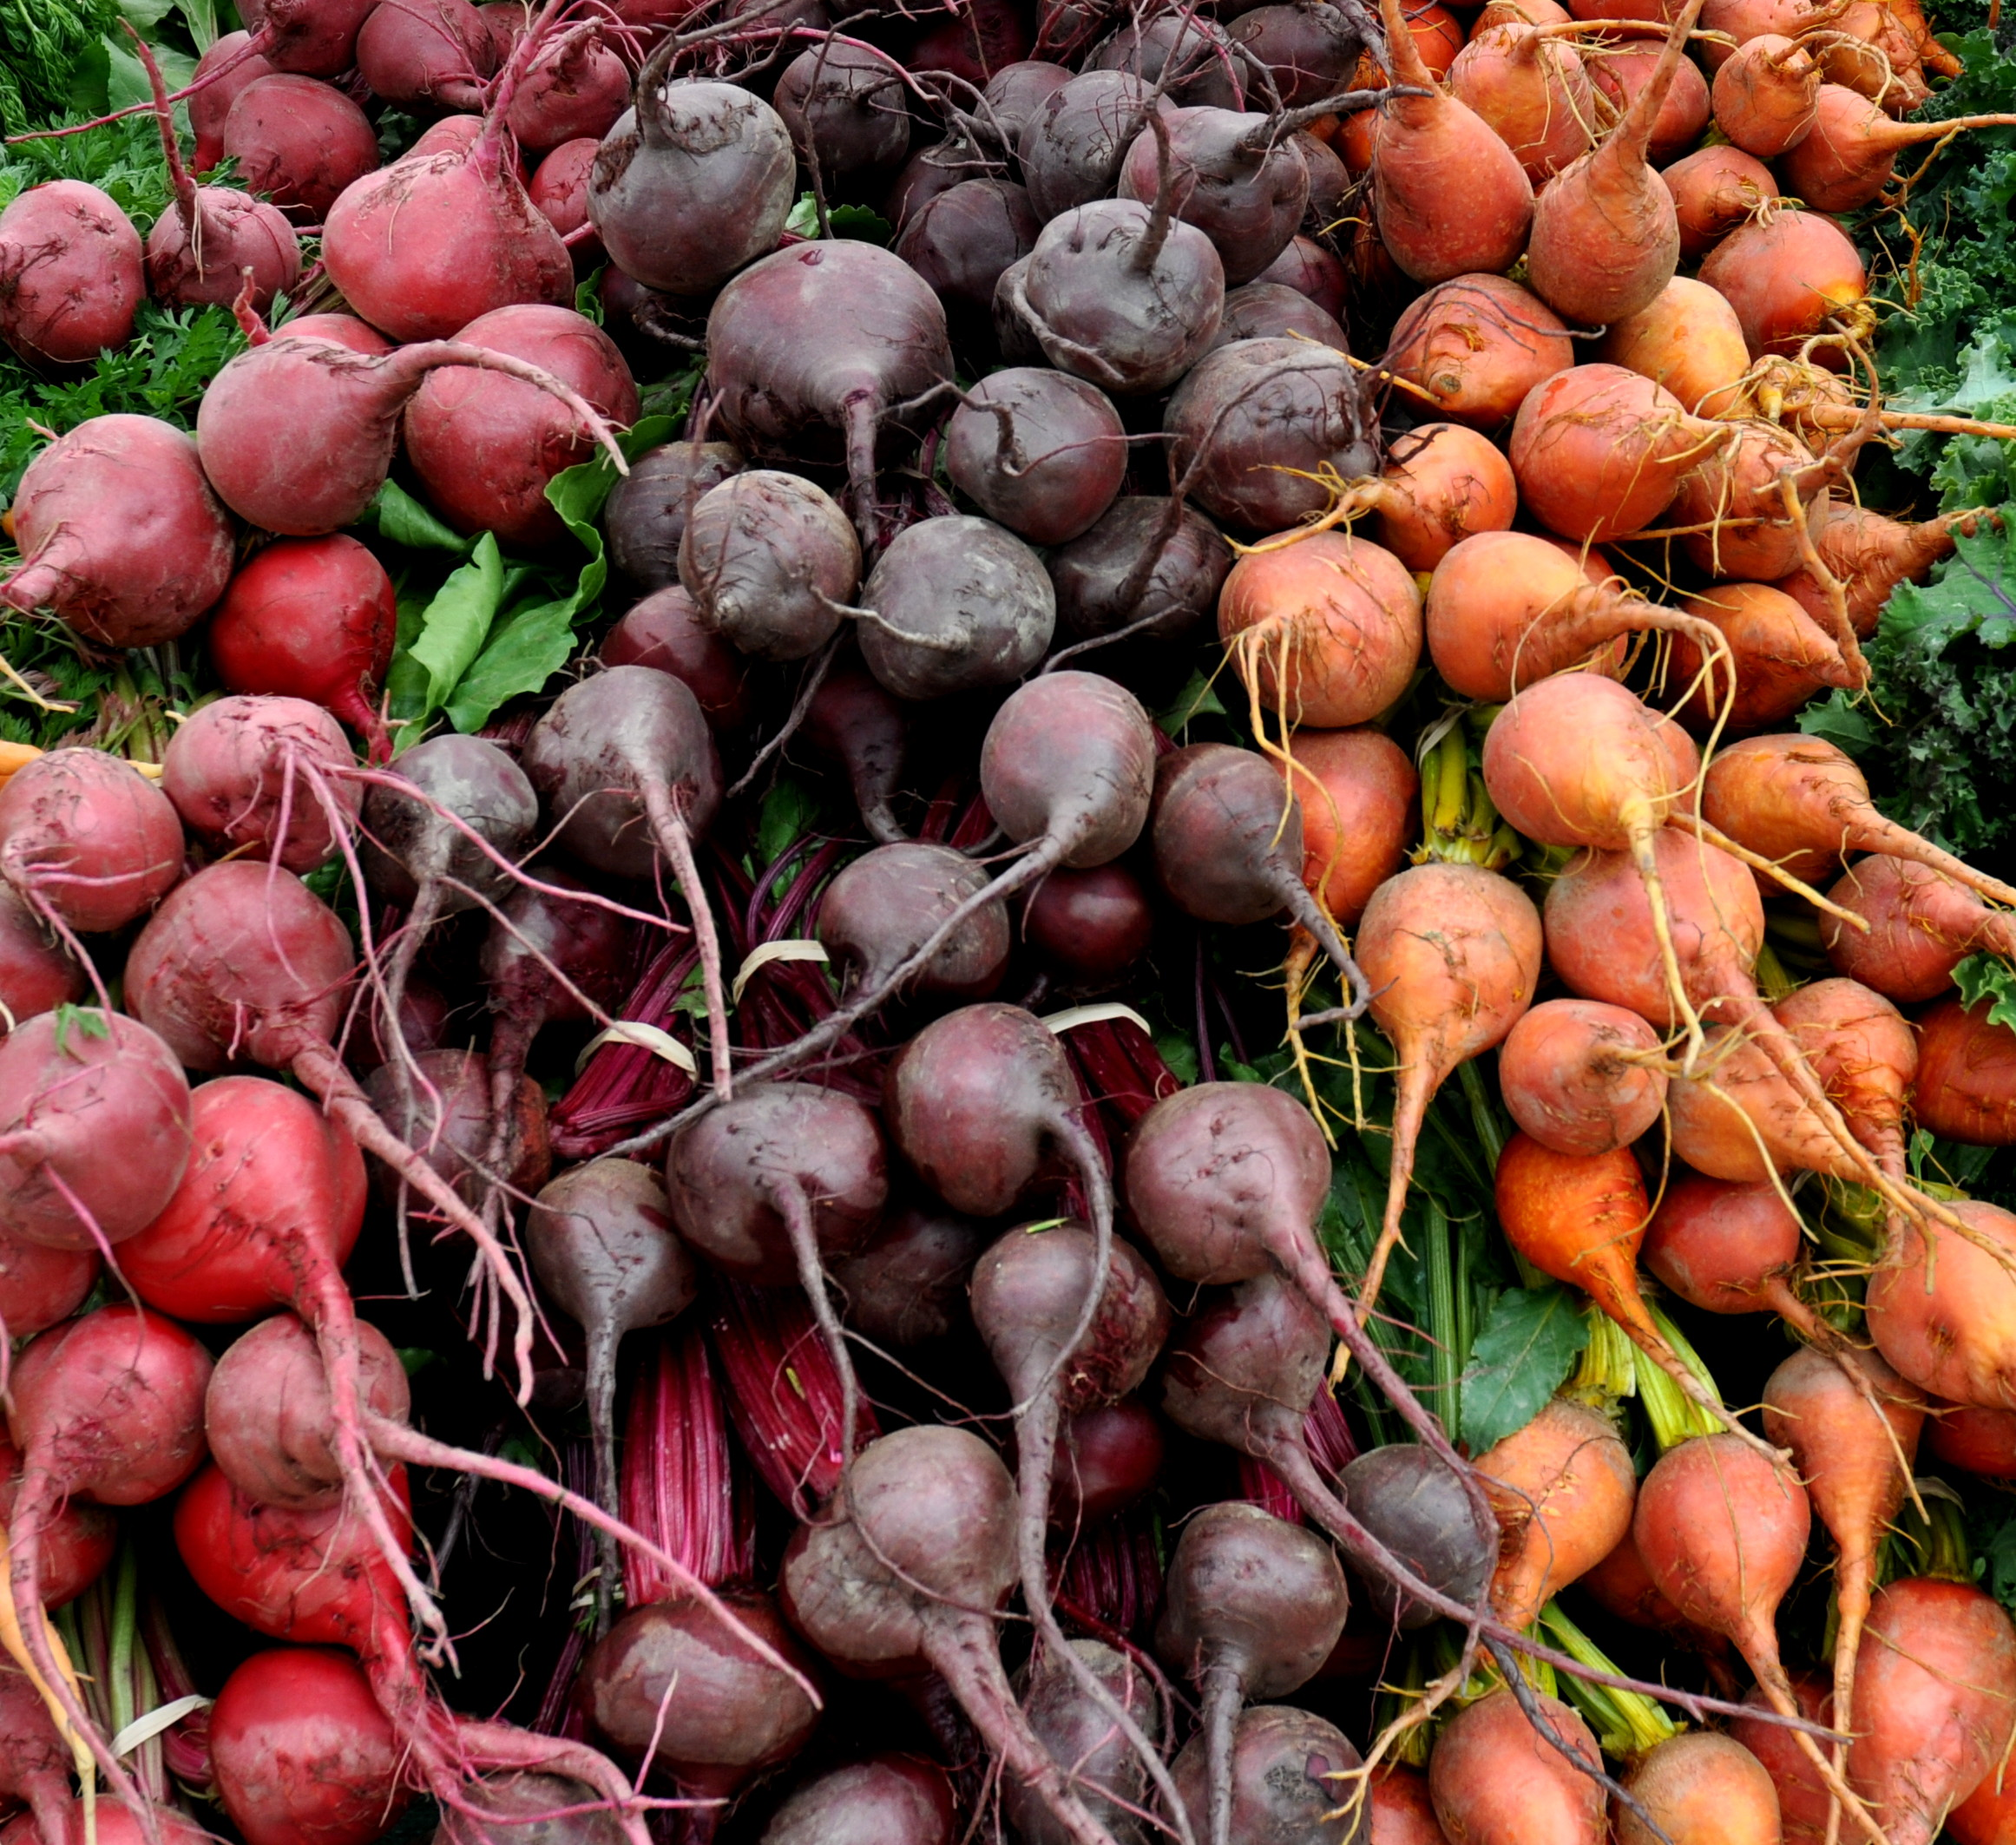 Beets from Gaia's Harmony Farm. Photo copyright 2013 by Zachary D. Lyons.